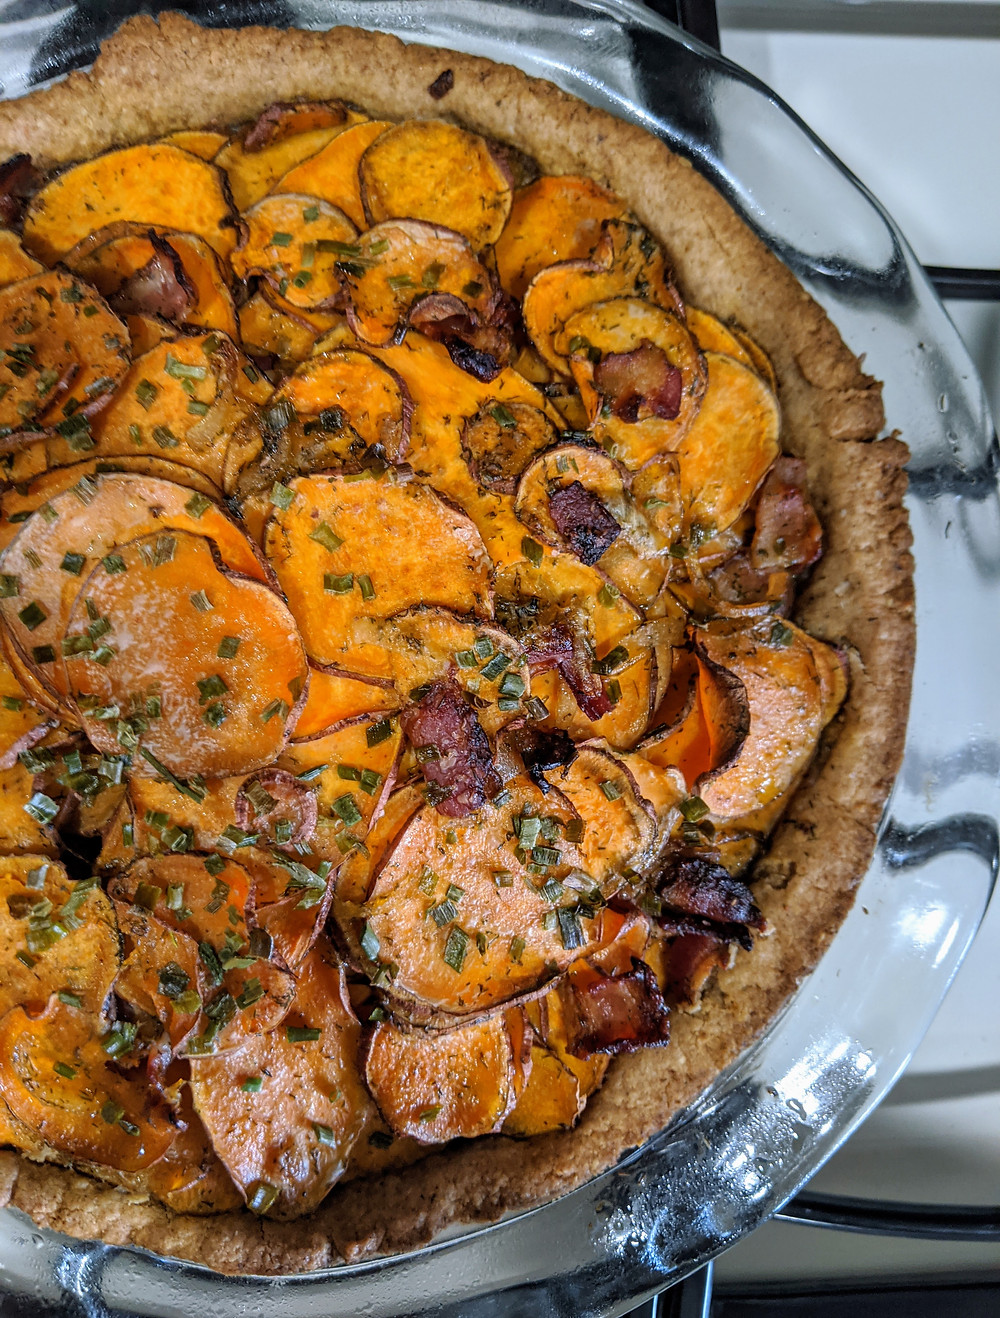 irish potato pie - Recipe Round-Up for the Perfect Food Allergy-Friendly St. Patrick's Day - amanda macgregor centineo - food allergy recipes